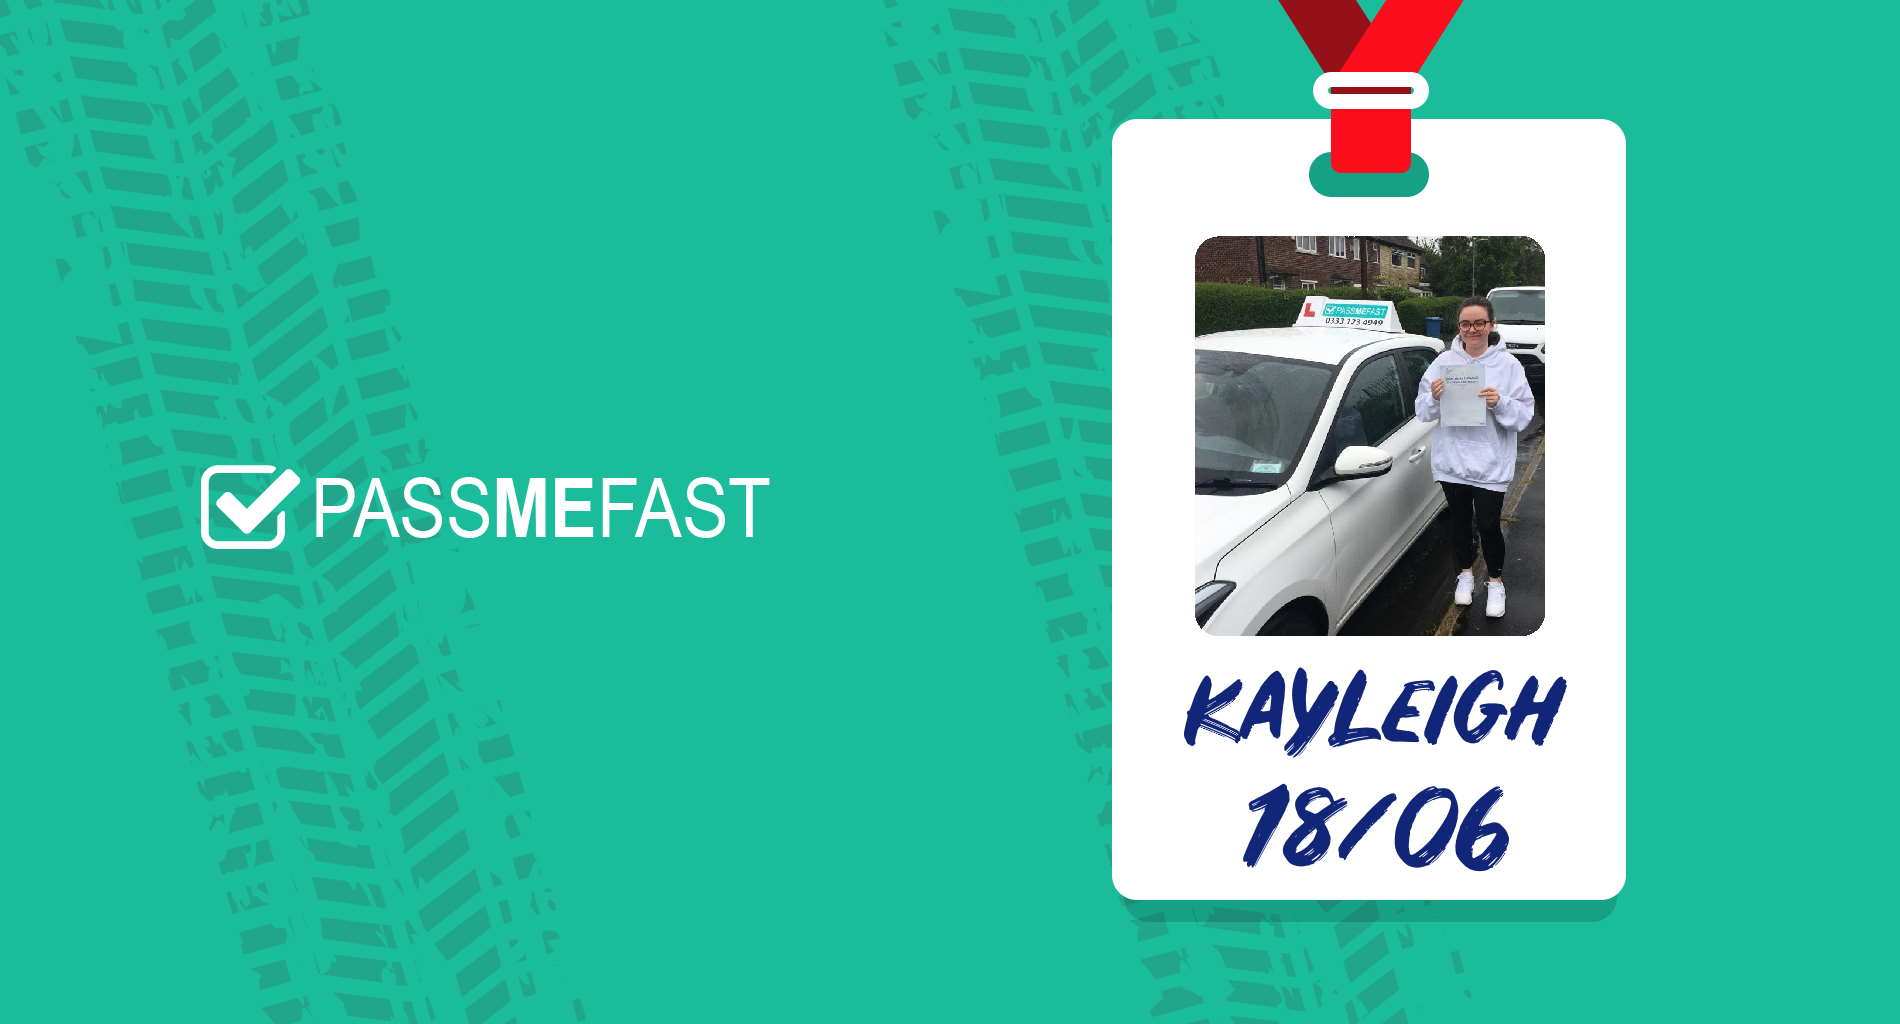 PassMeFast frame surrounding pass picture of Kayleigh